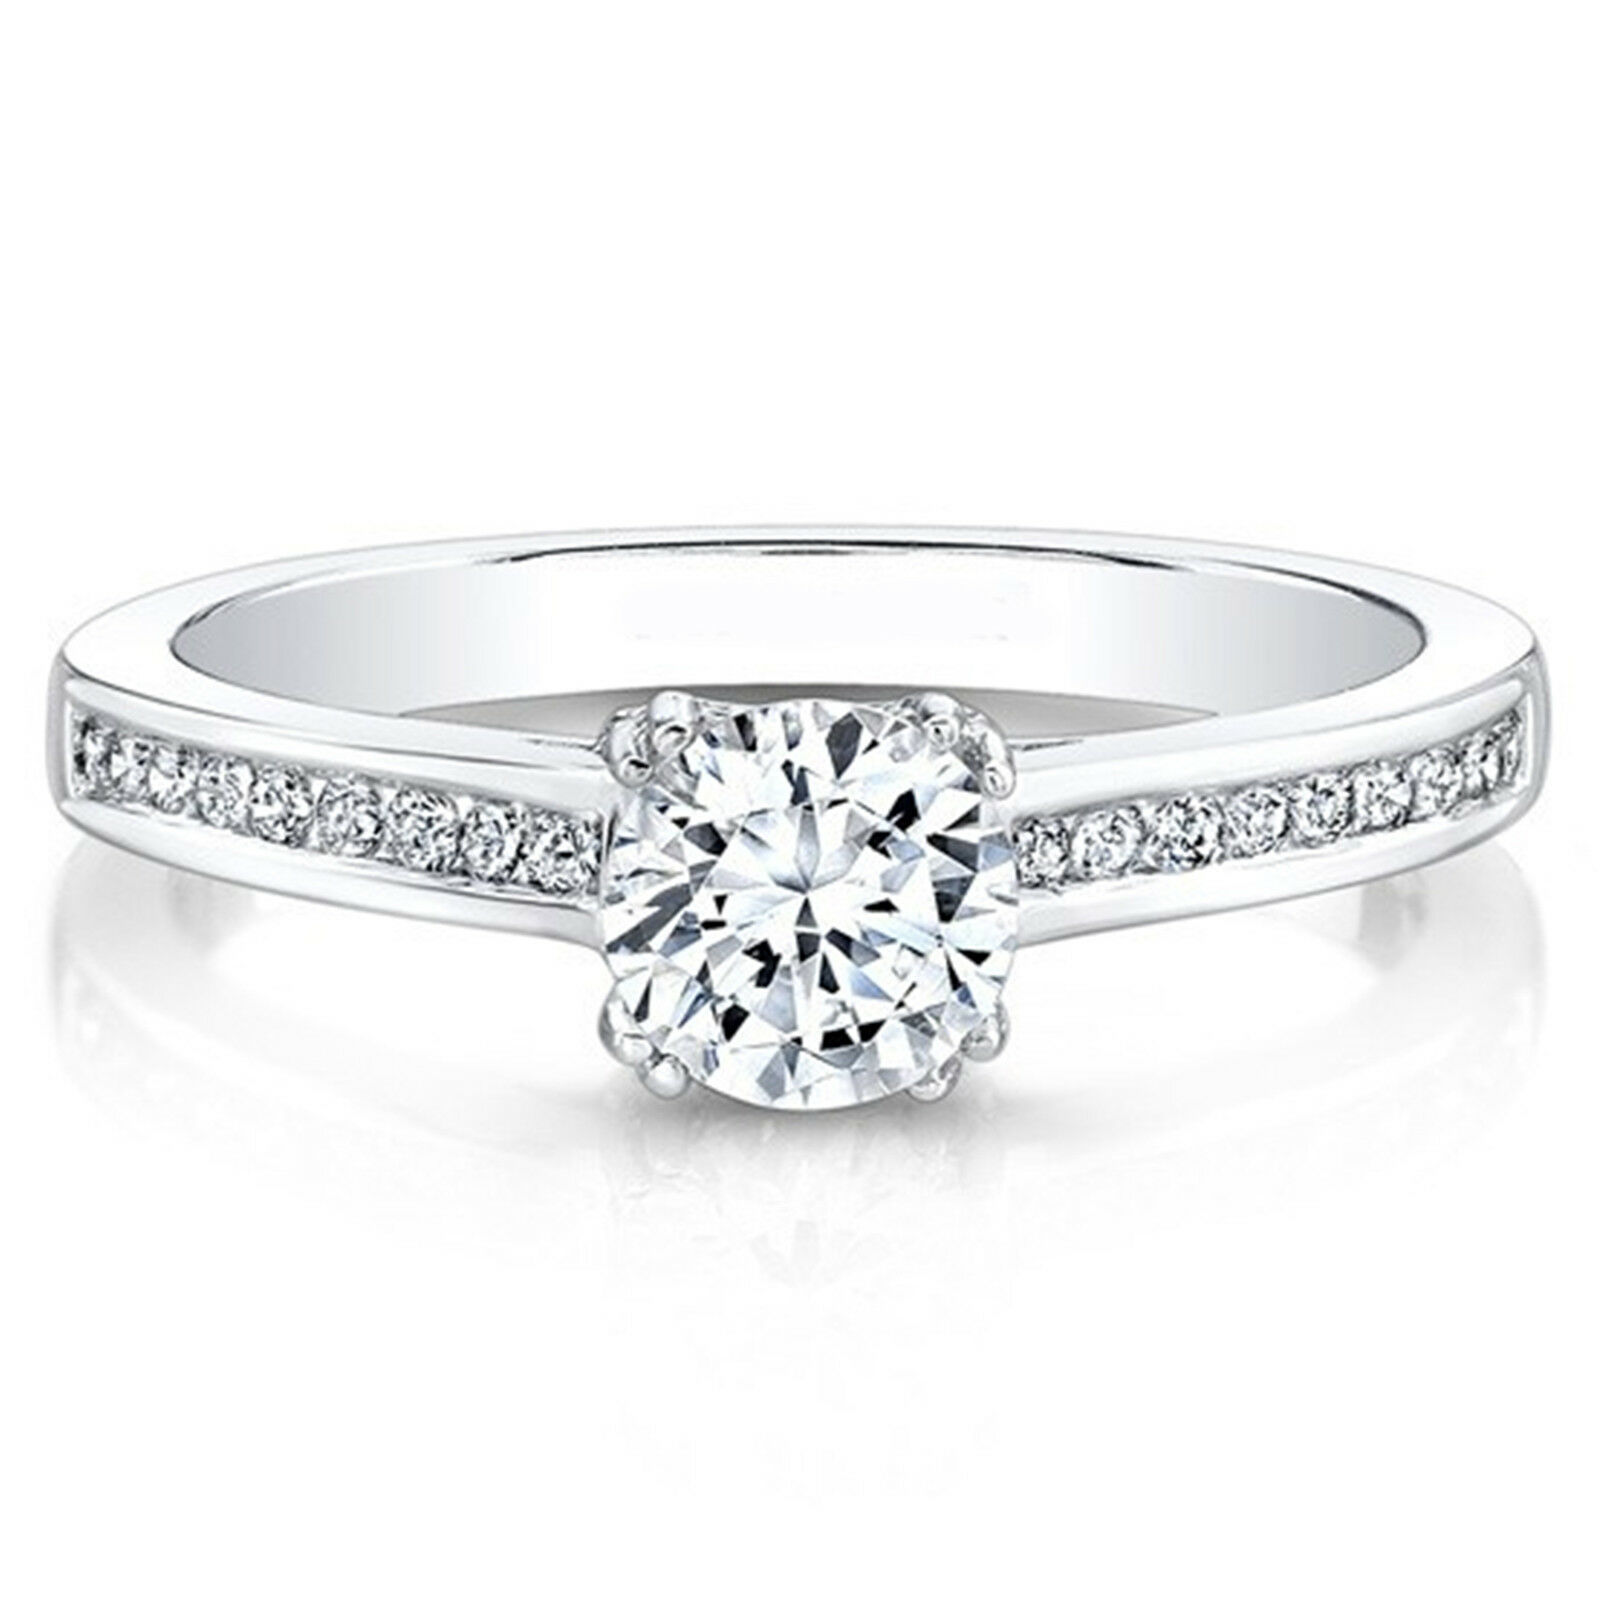 Engagement & Wedding 0.83ct Round Diamond Engagement Wedding Band Solid 14k Solid White Gold Jewelry & Watches